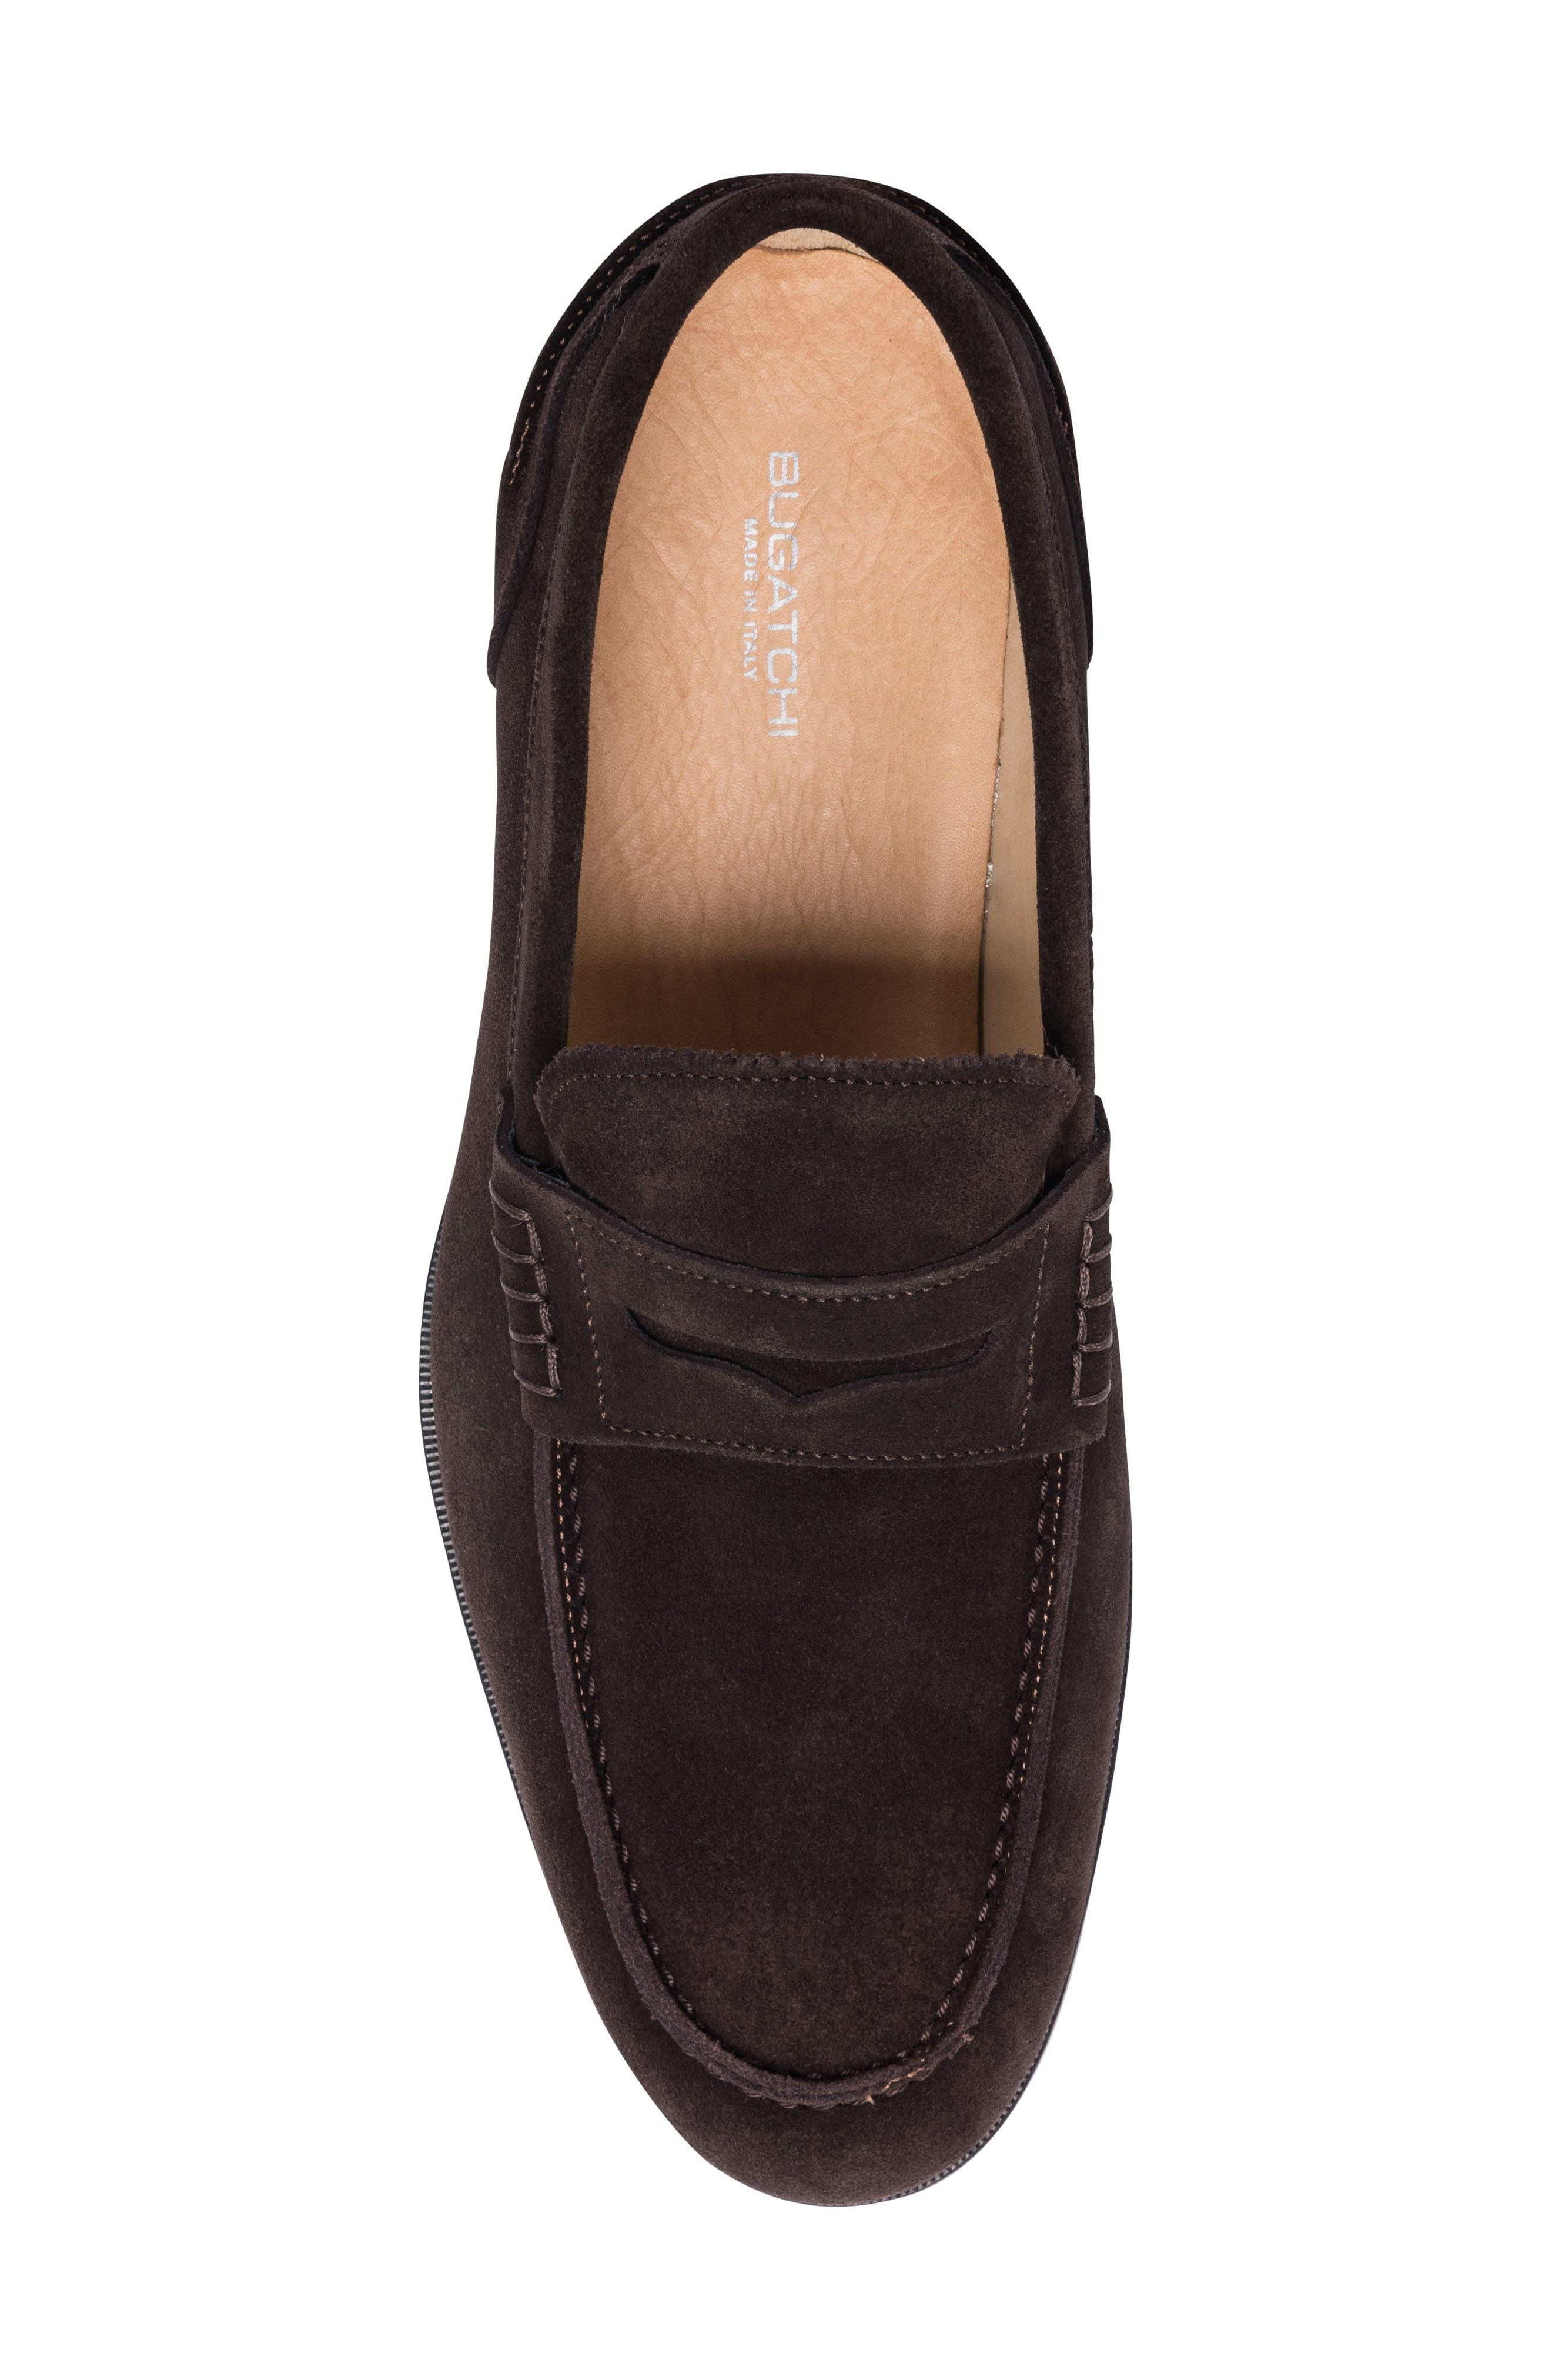 Torino Penny Loafer,                             Alternate thumbnail 5, color,                             BROWN SUEDE